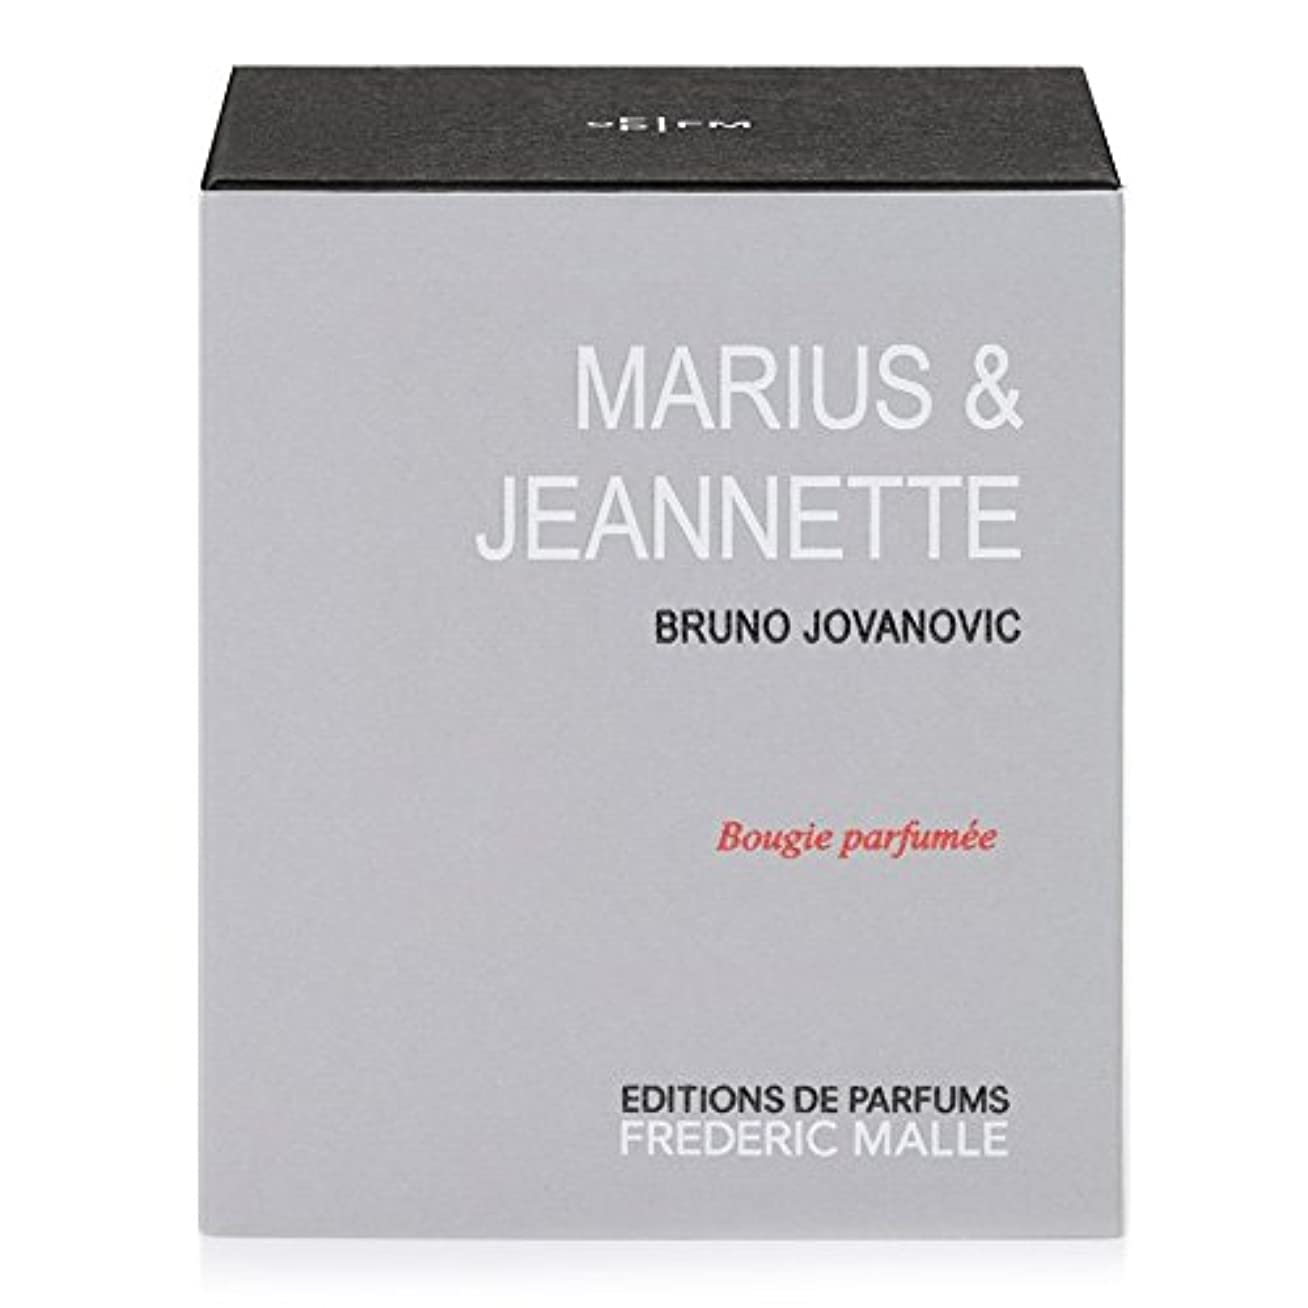 Frederic Malle Maruis and Jeanette Scented Candle (Pack of 4) - フレデリック?マル とジャネット?香りのキャンドル x4 [並行輸入品]